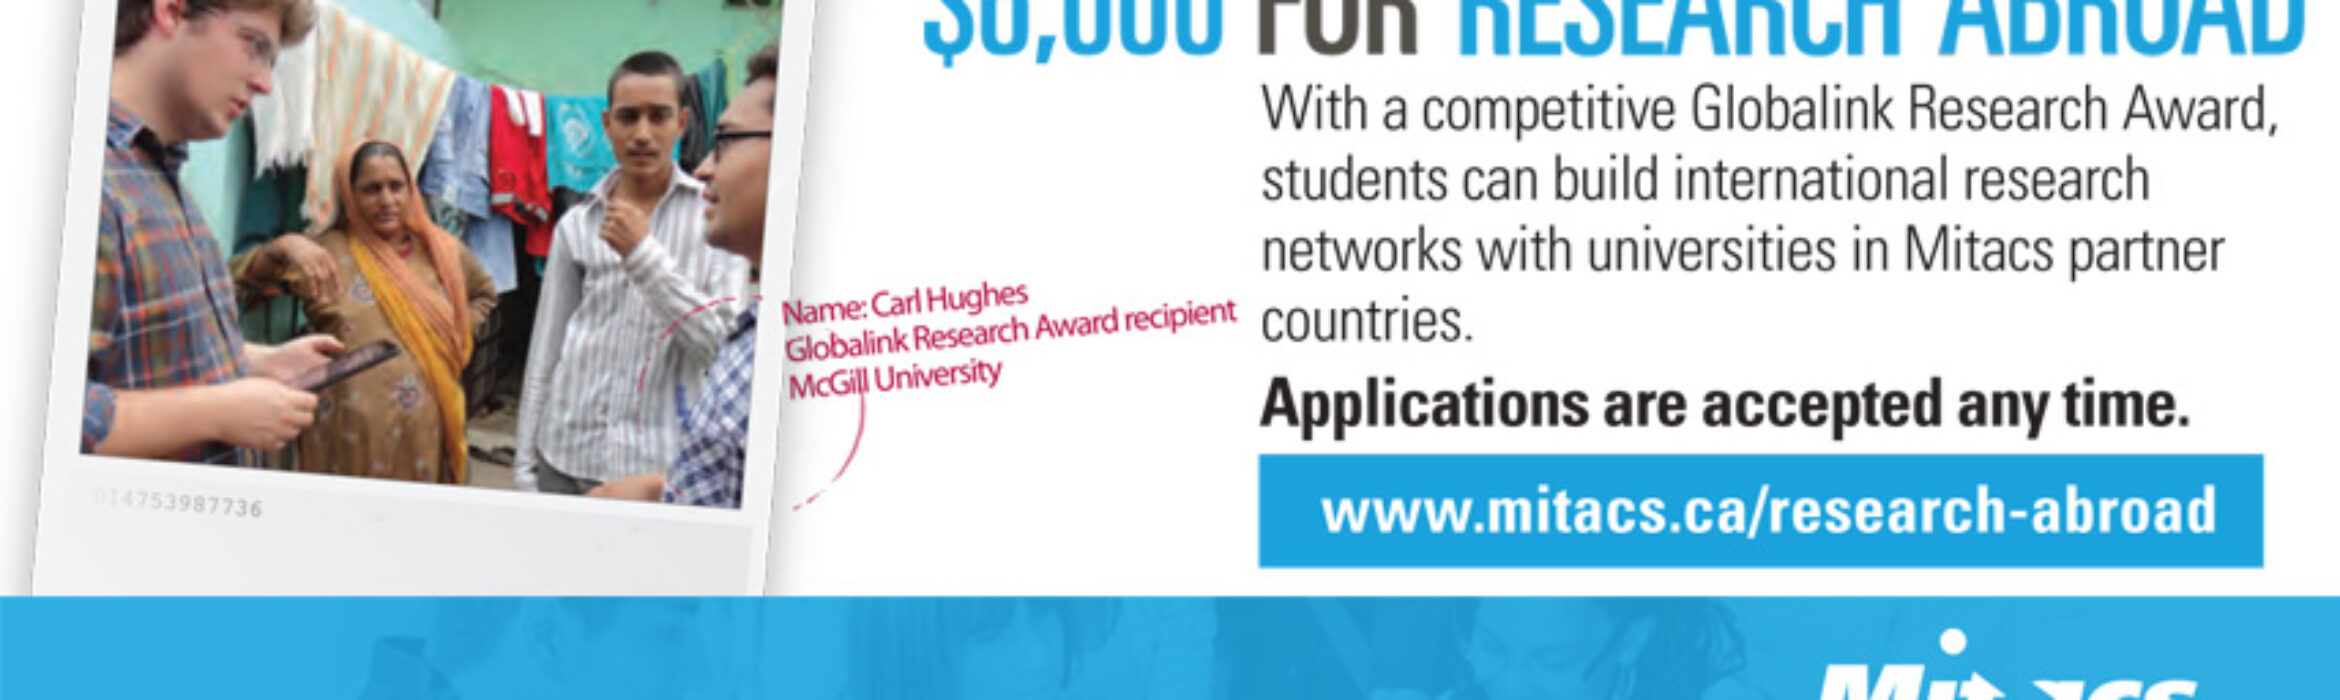 Mitacs Globalink Research Award for 2019